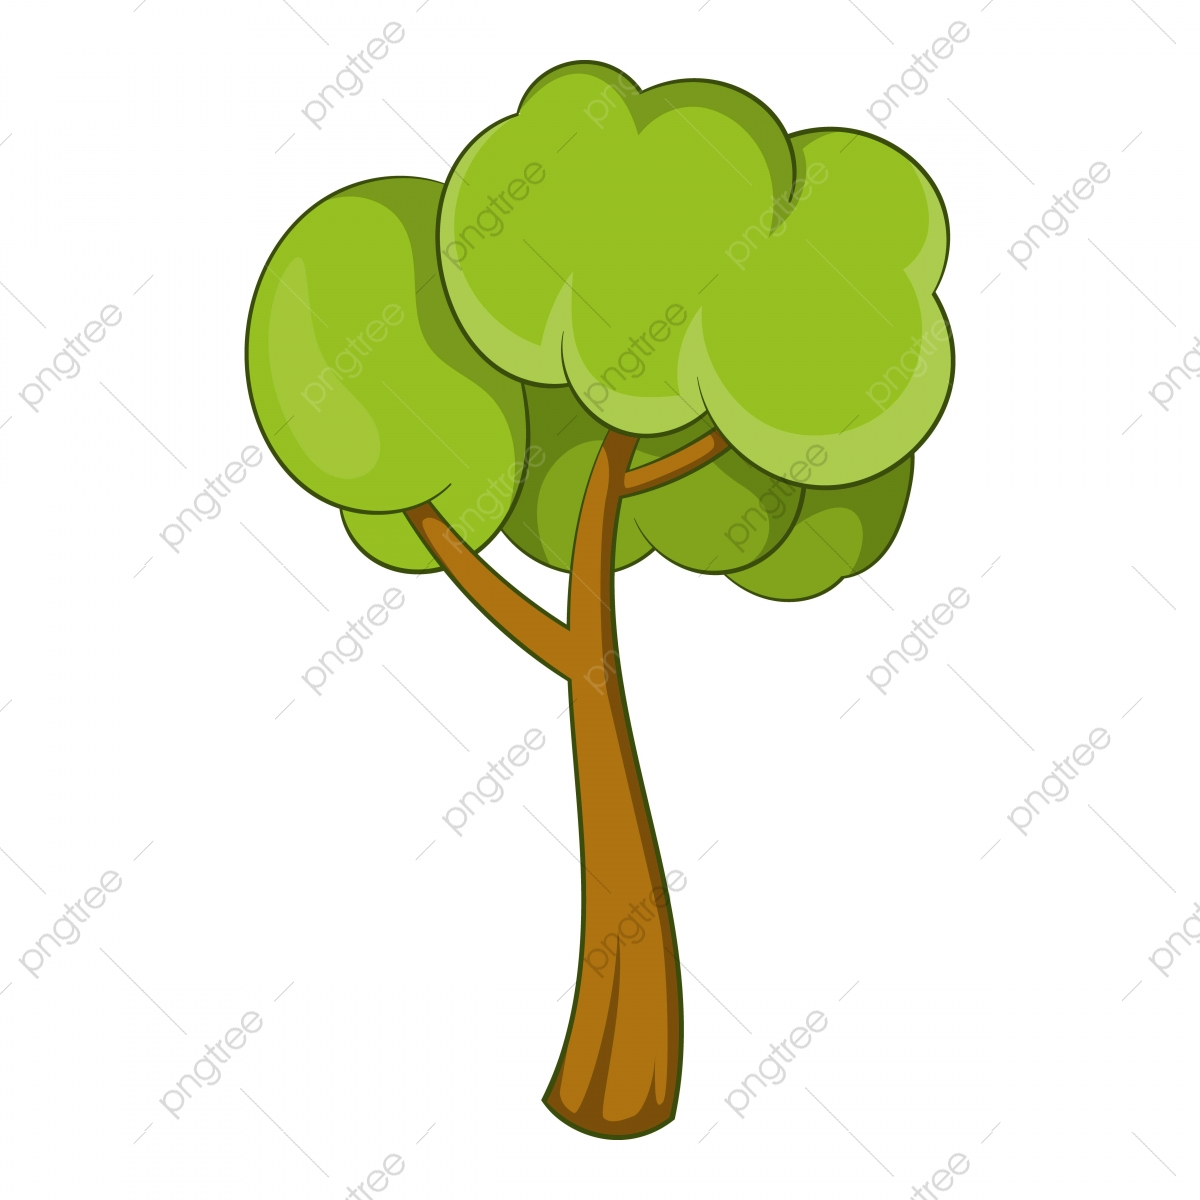 Tree Clipart Download Free Transparent Png Format Clipart Images On Pngtree